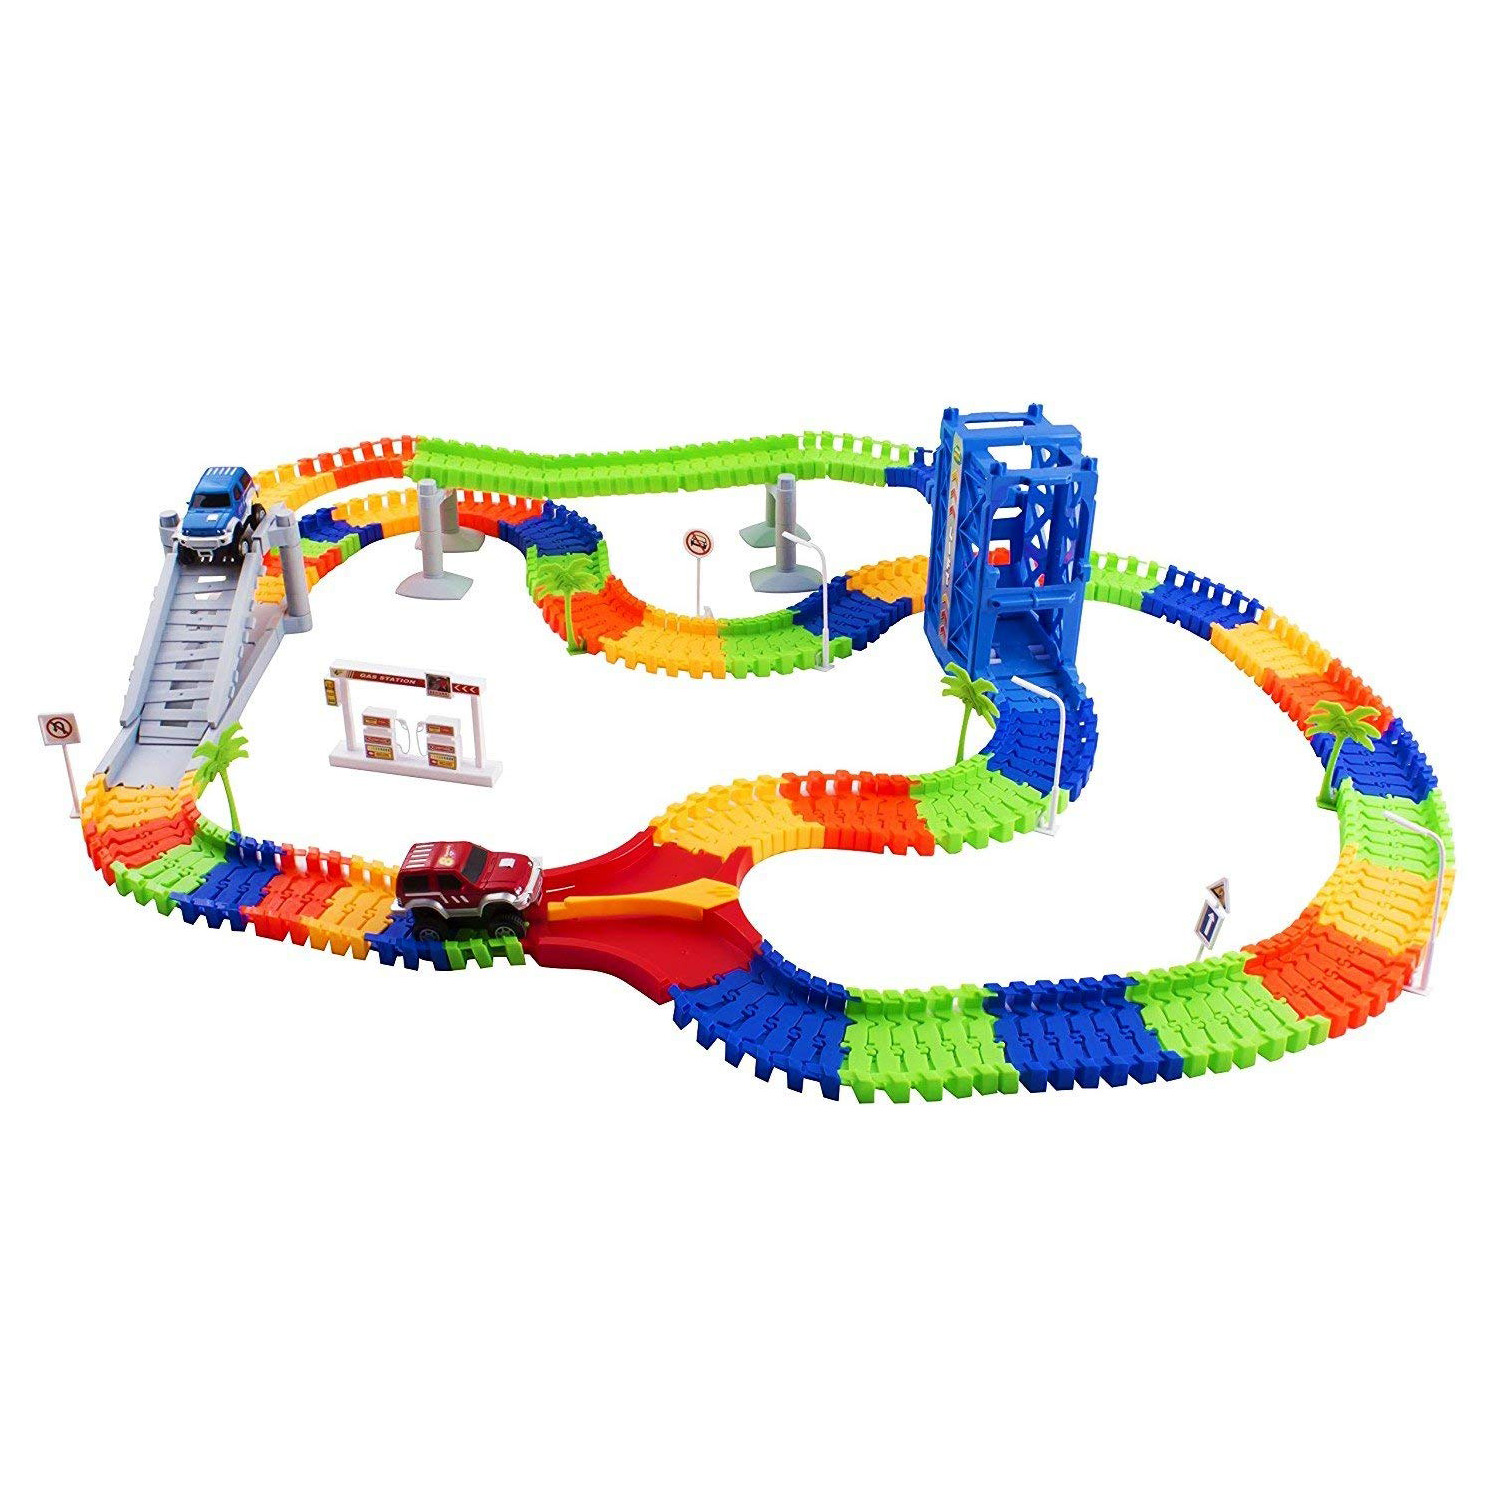 Race Car Track Set Toy Educational Twisted Flexible Building Tracks 240 Pieces Racetrack 2 Cars with Lifter Bridge Trees Gas Station for Children Ages 3 4 5 6 Year old Kids Toys Unisex Boys And Girls